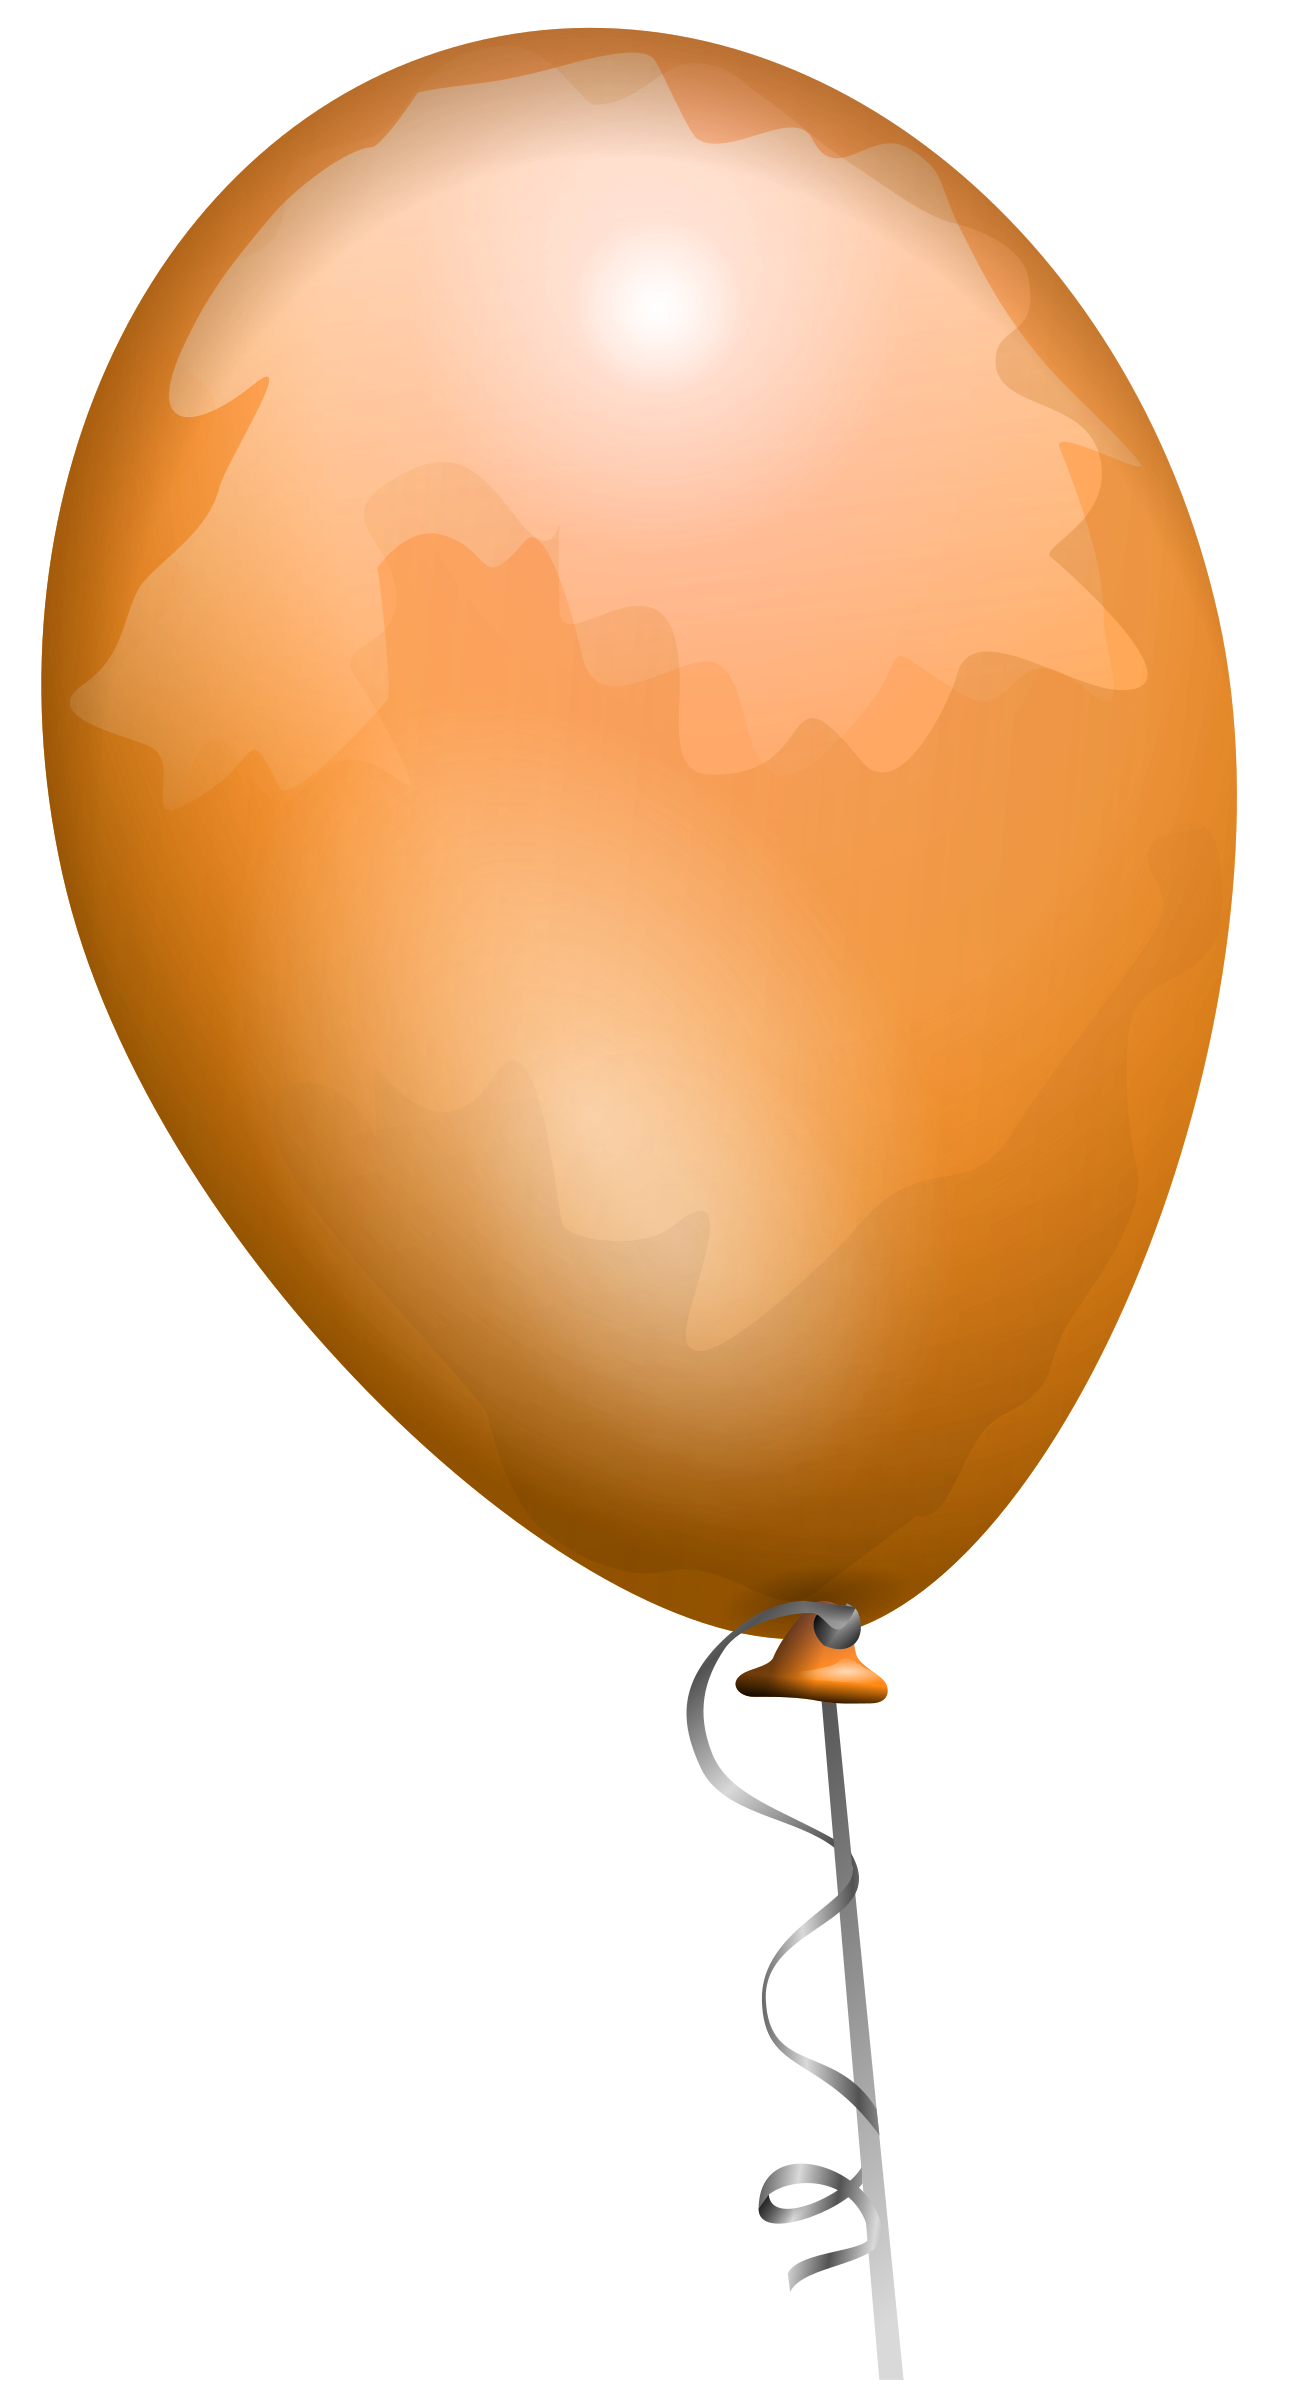 Orange balloon by AJ